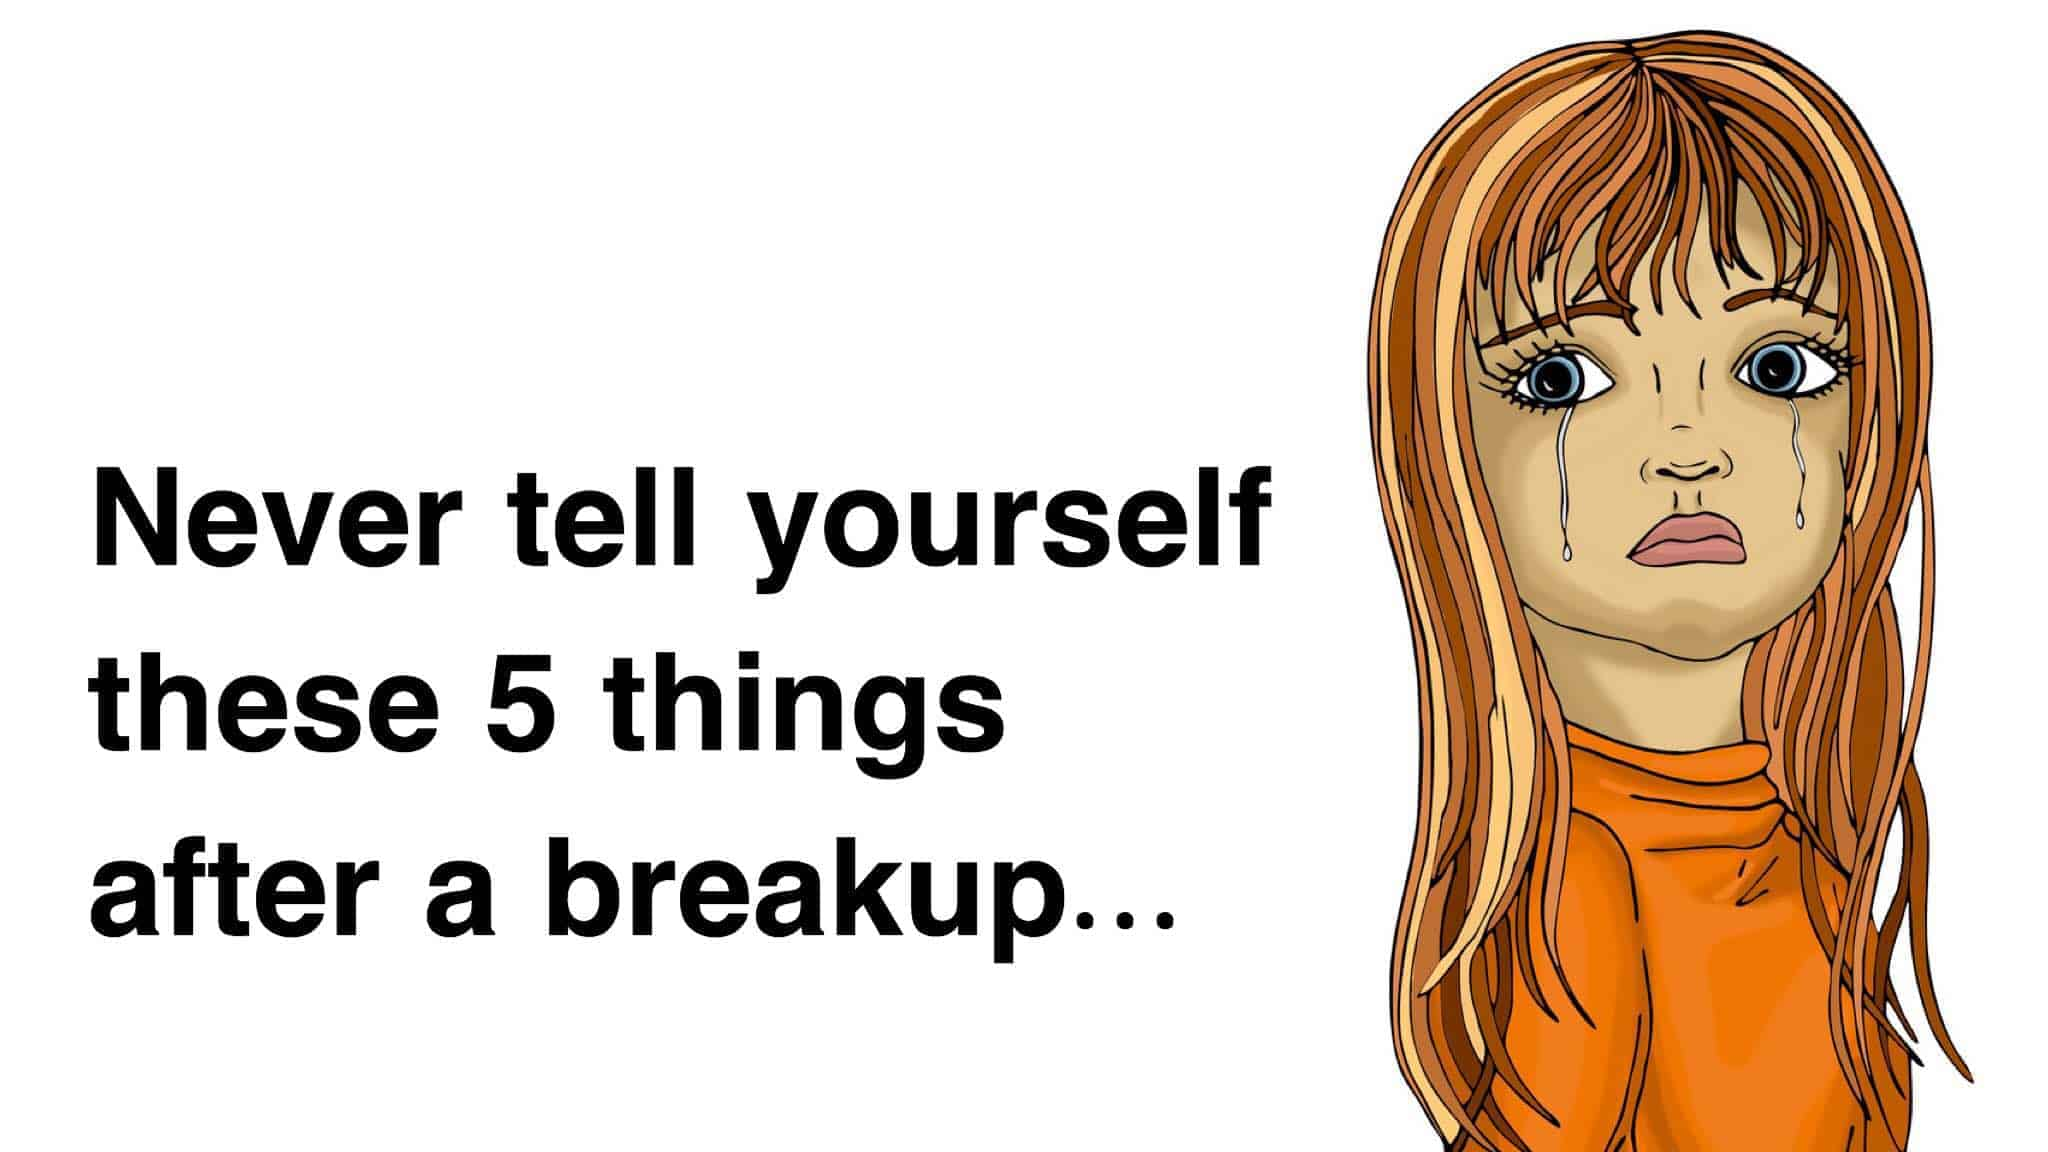 What not to do after a breakup